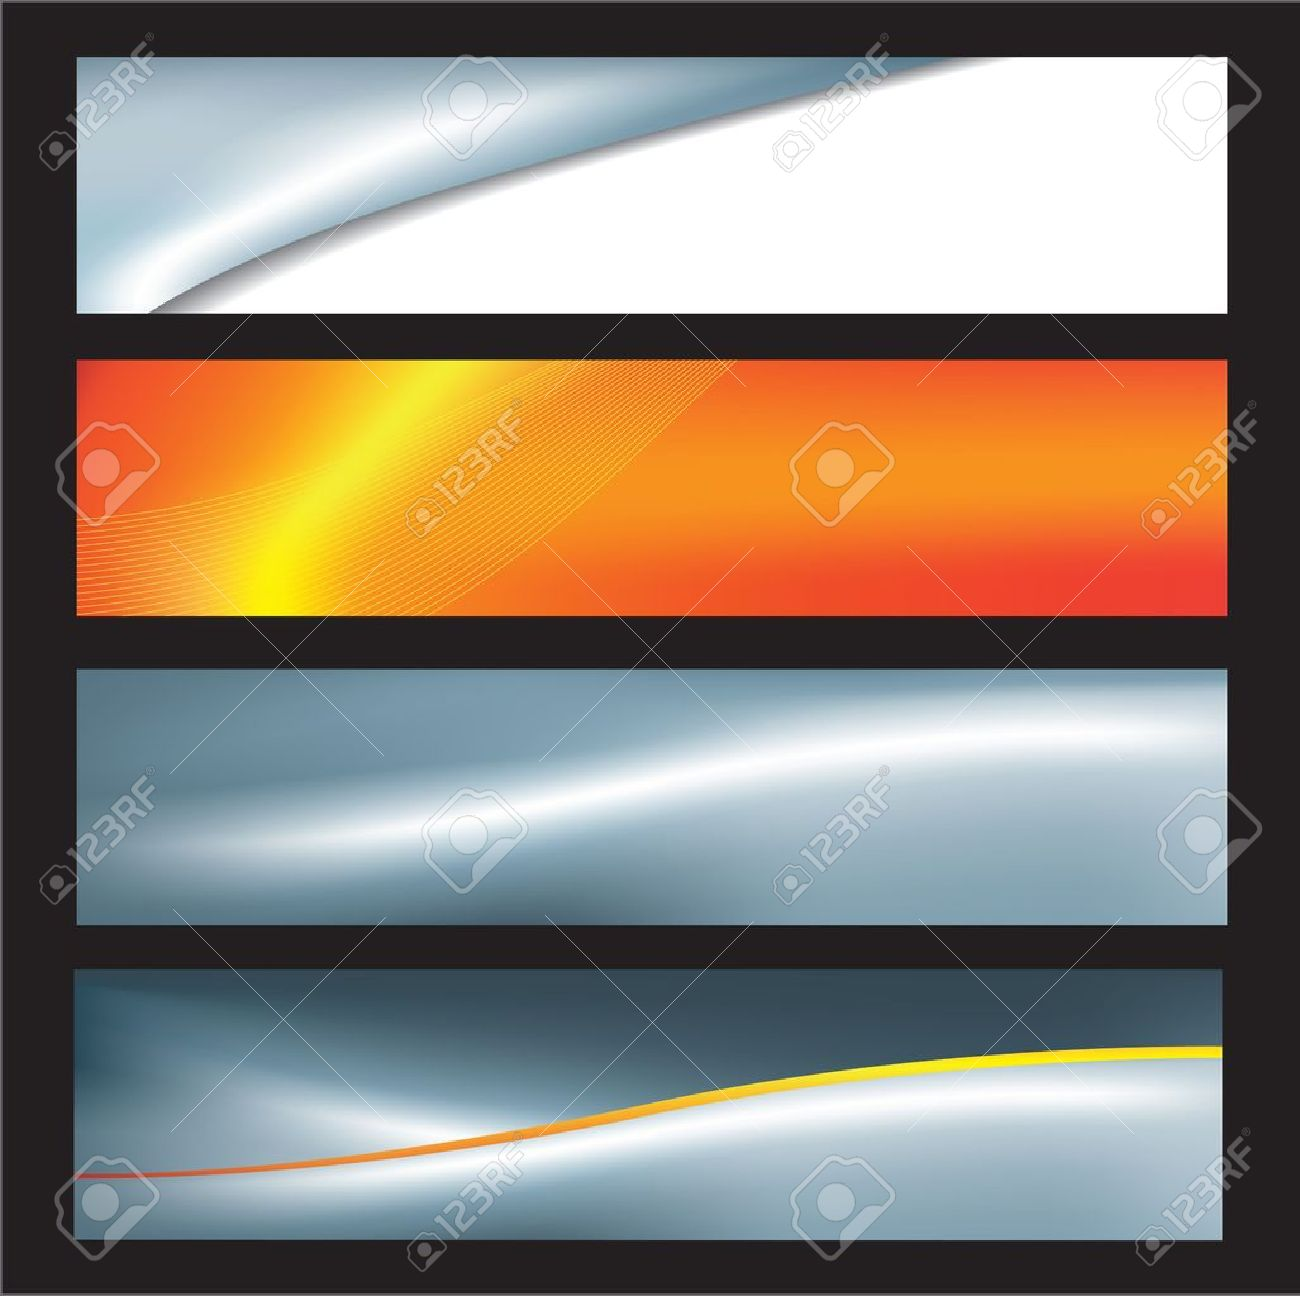 Free banner images for website - Website Banners With Space Left For Message Stock Vector 6833638